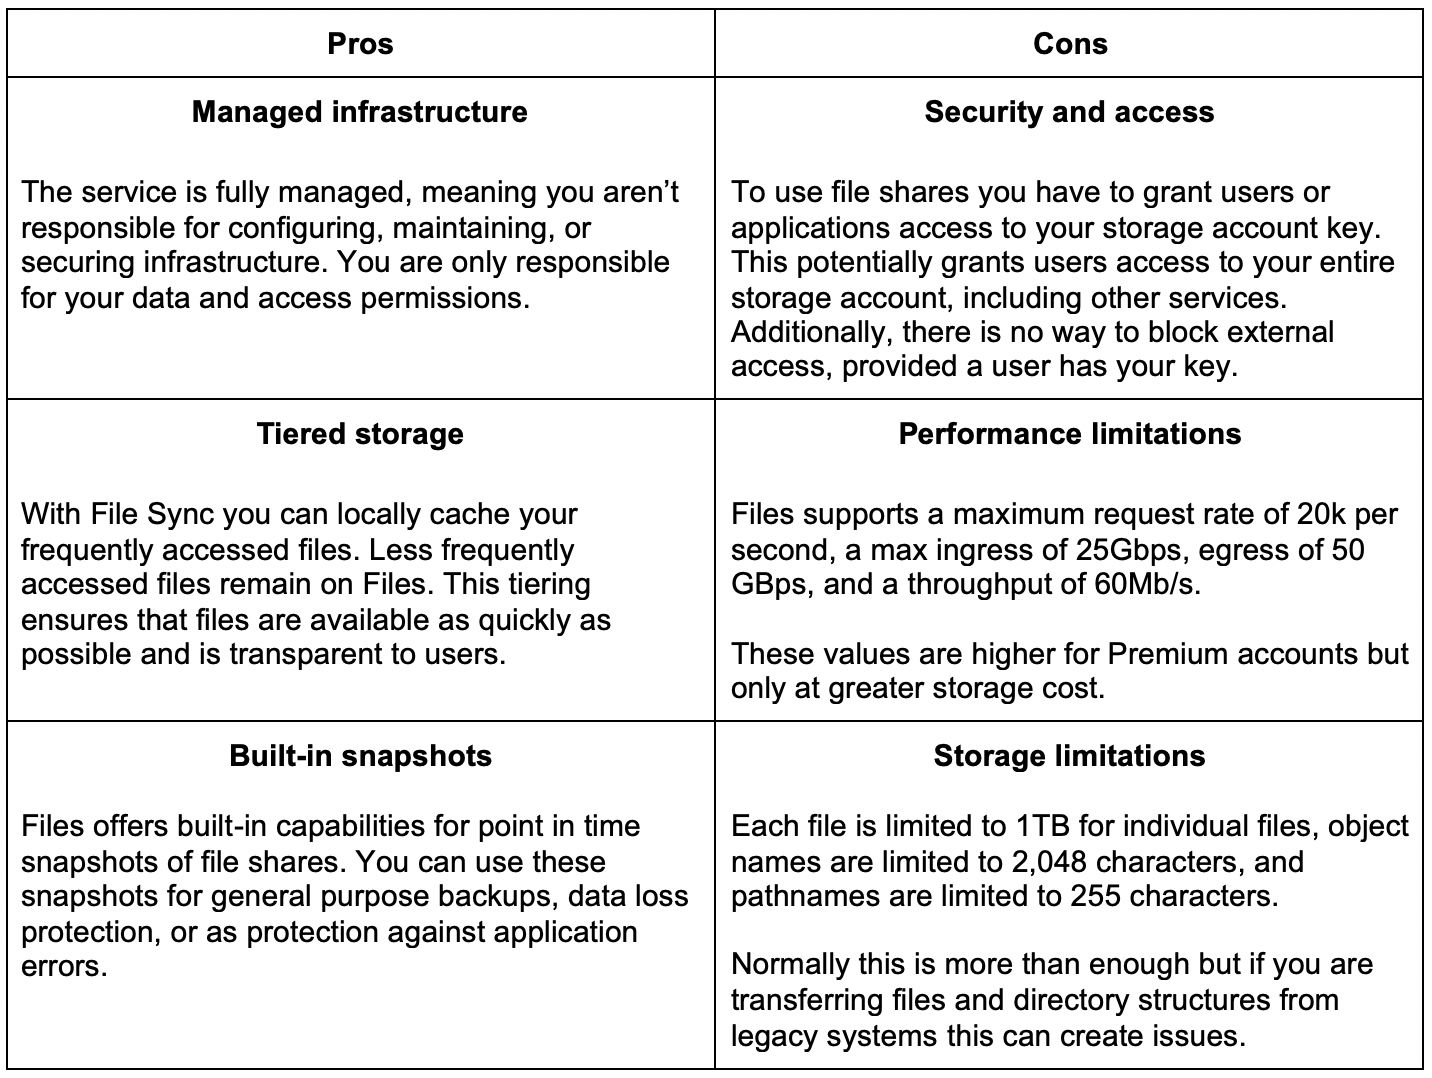 Azure File Storage Pros and Cons